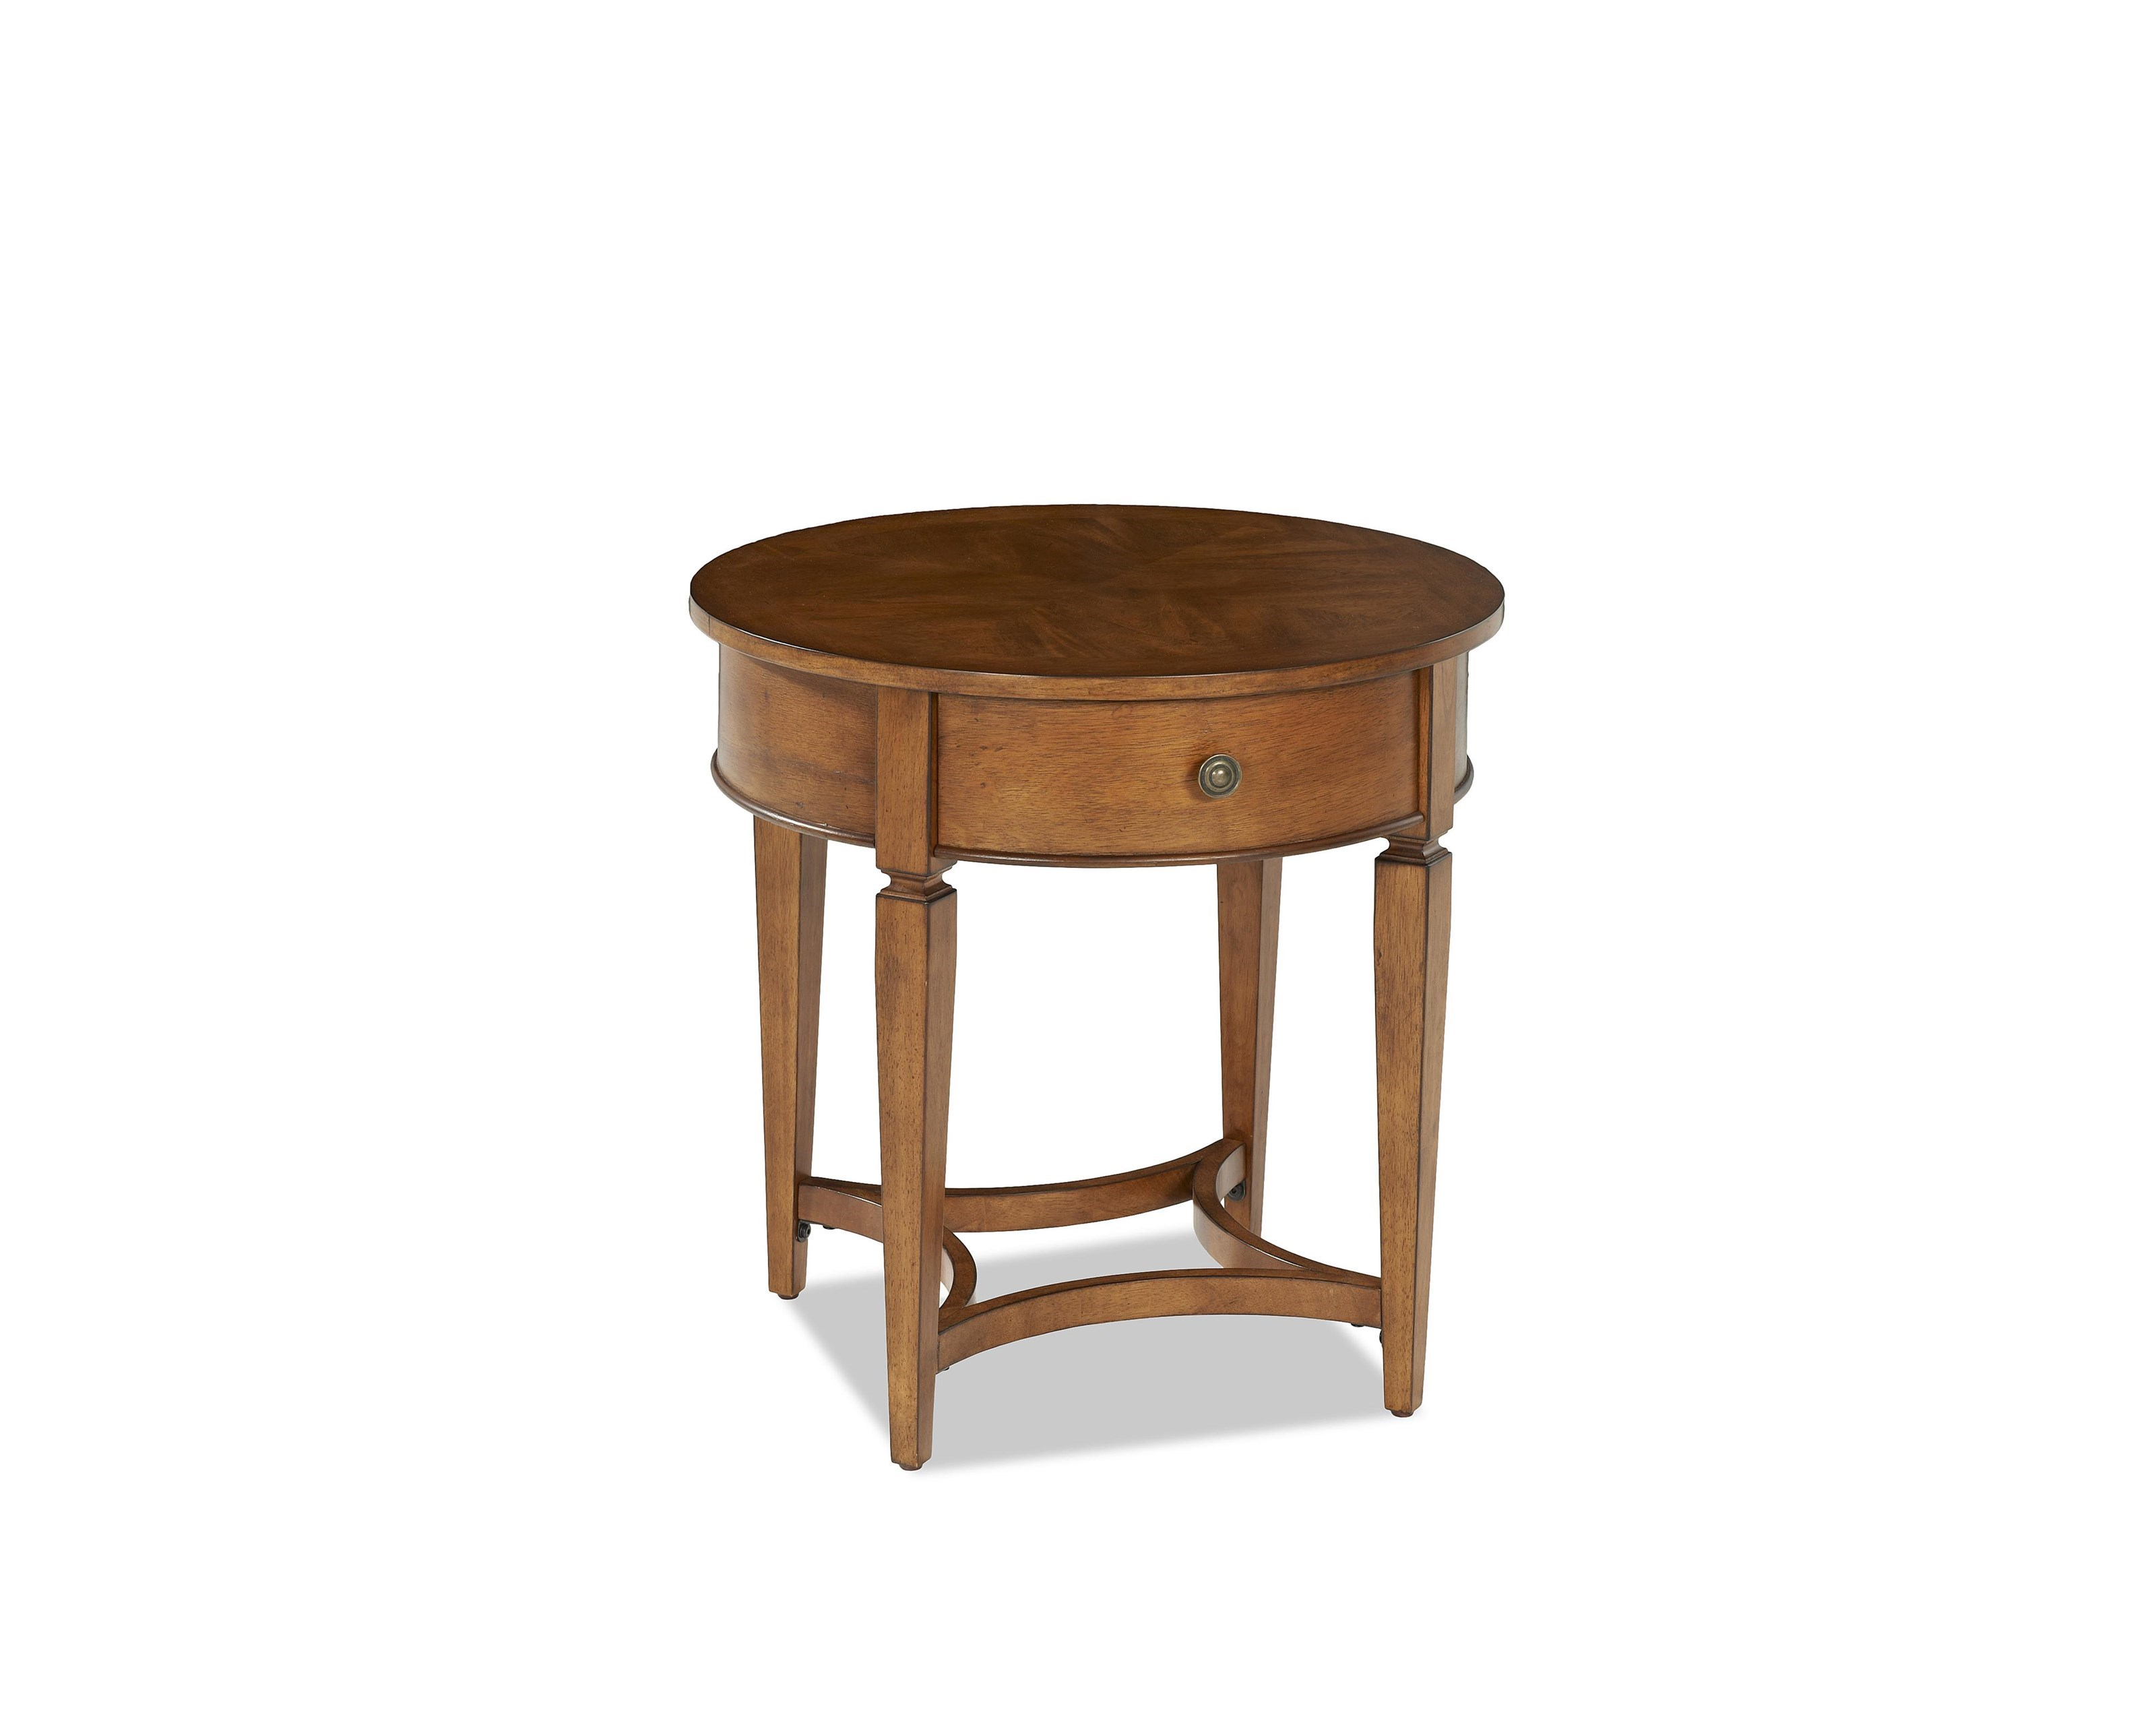 Elliston Place GlendaleGlendale Circular End Table